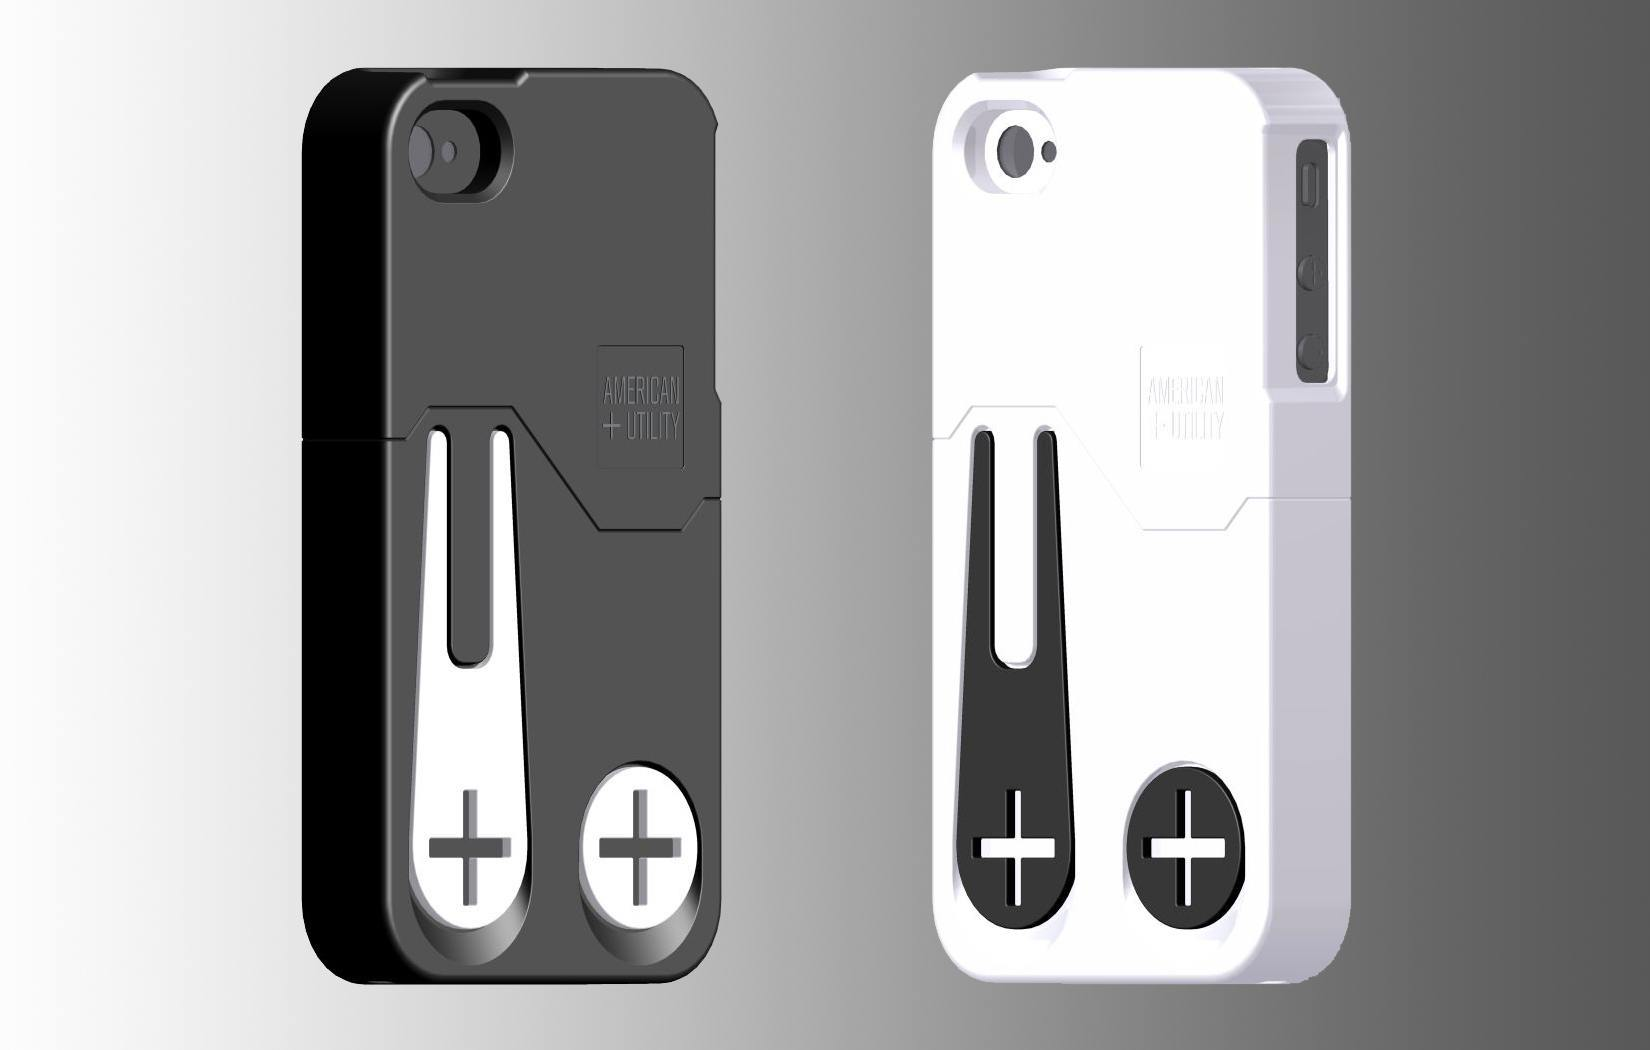 BurritoB0t Builds Burritos, MARK iPhone Case for Golfing